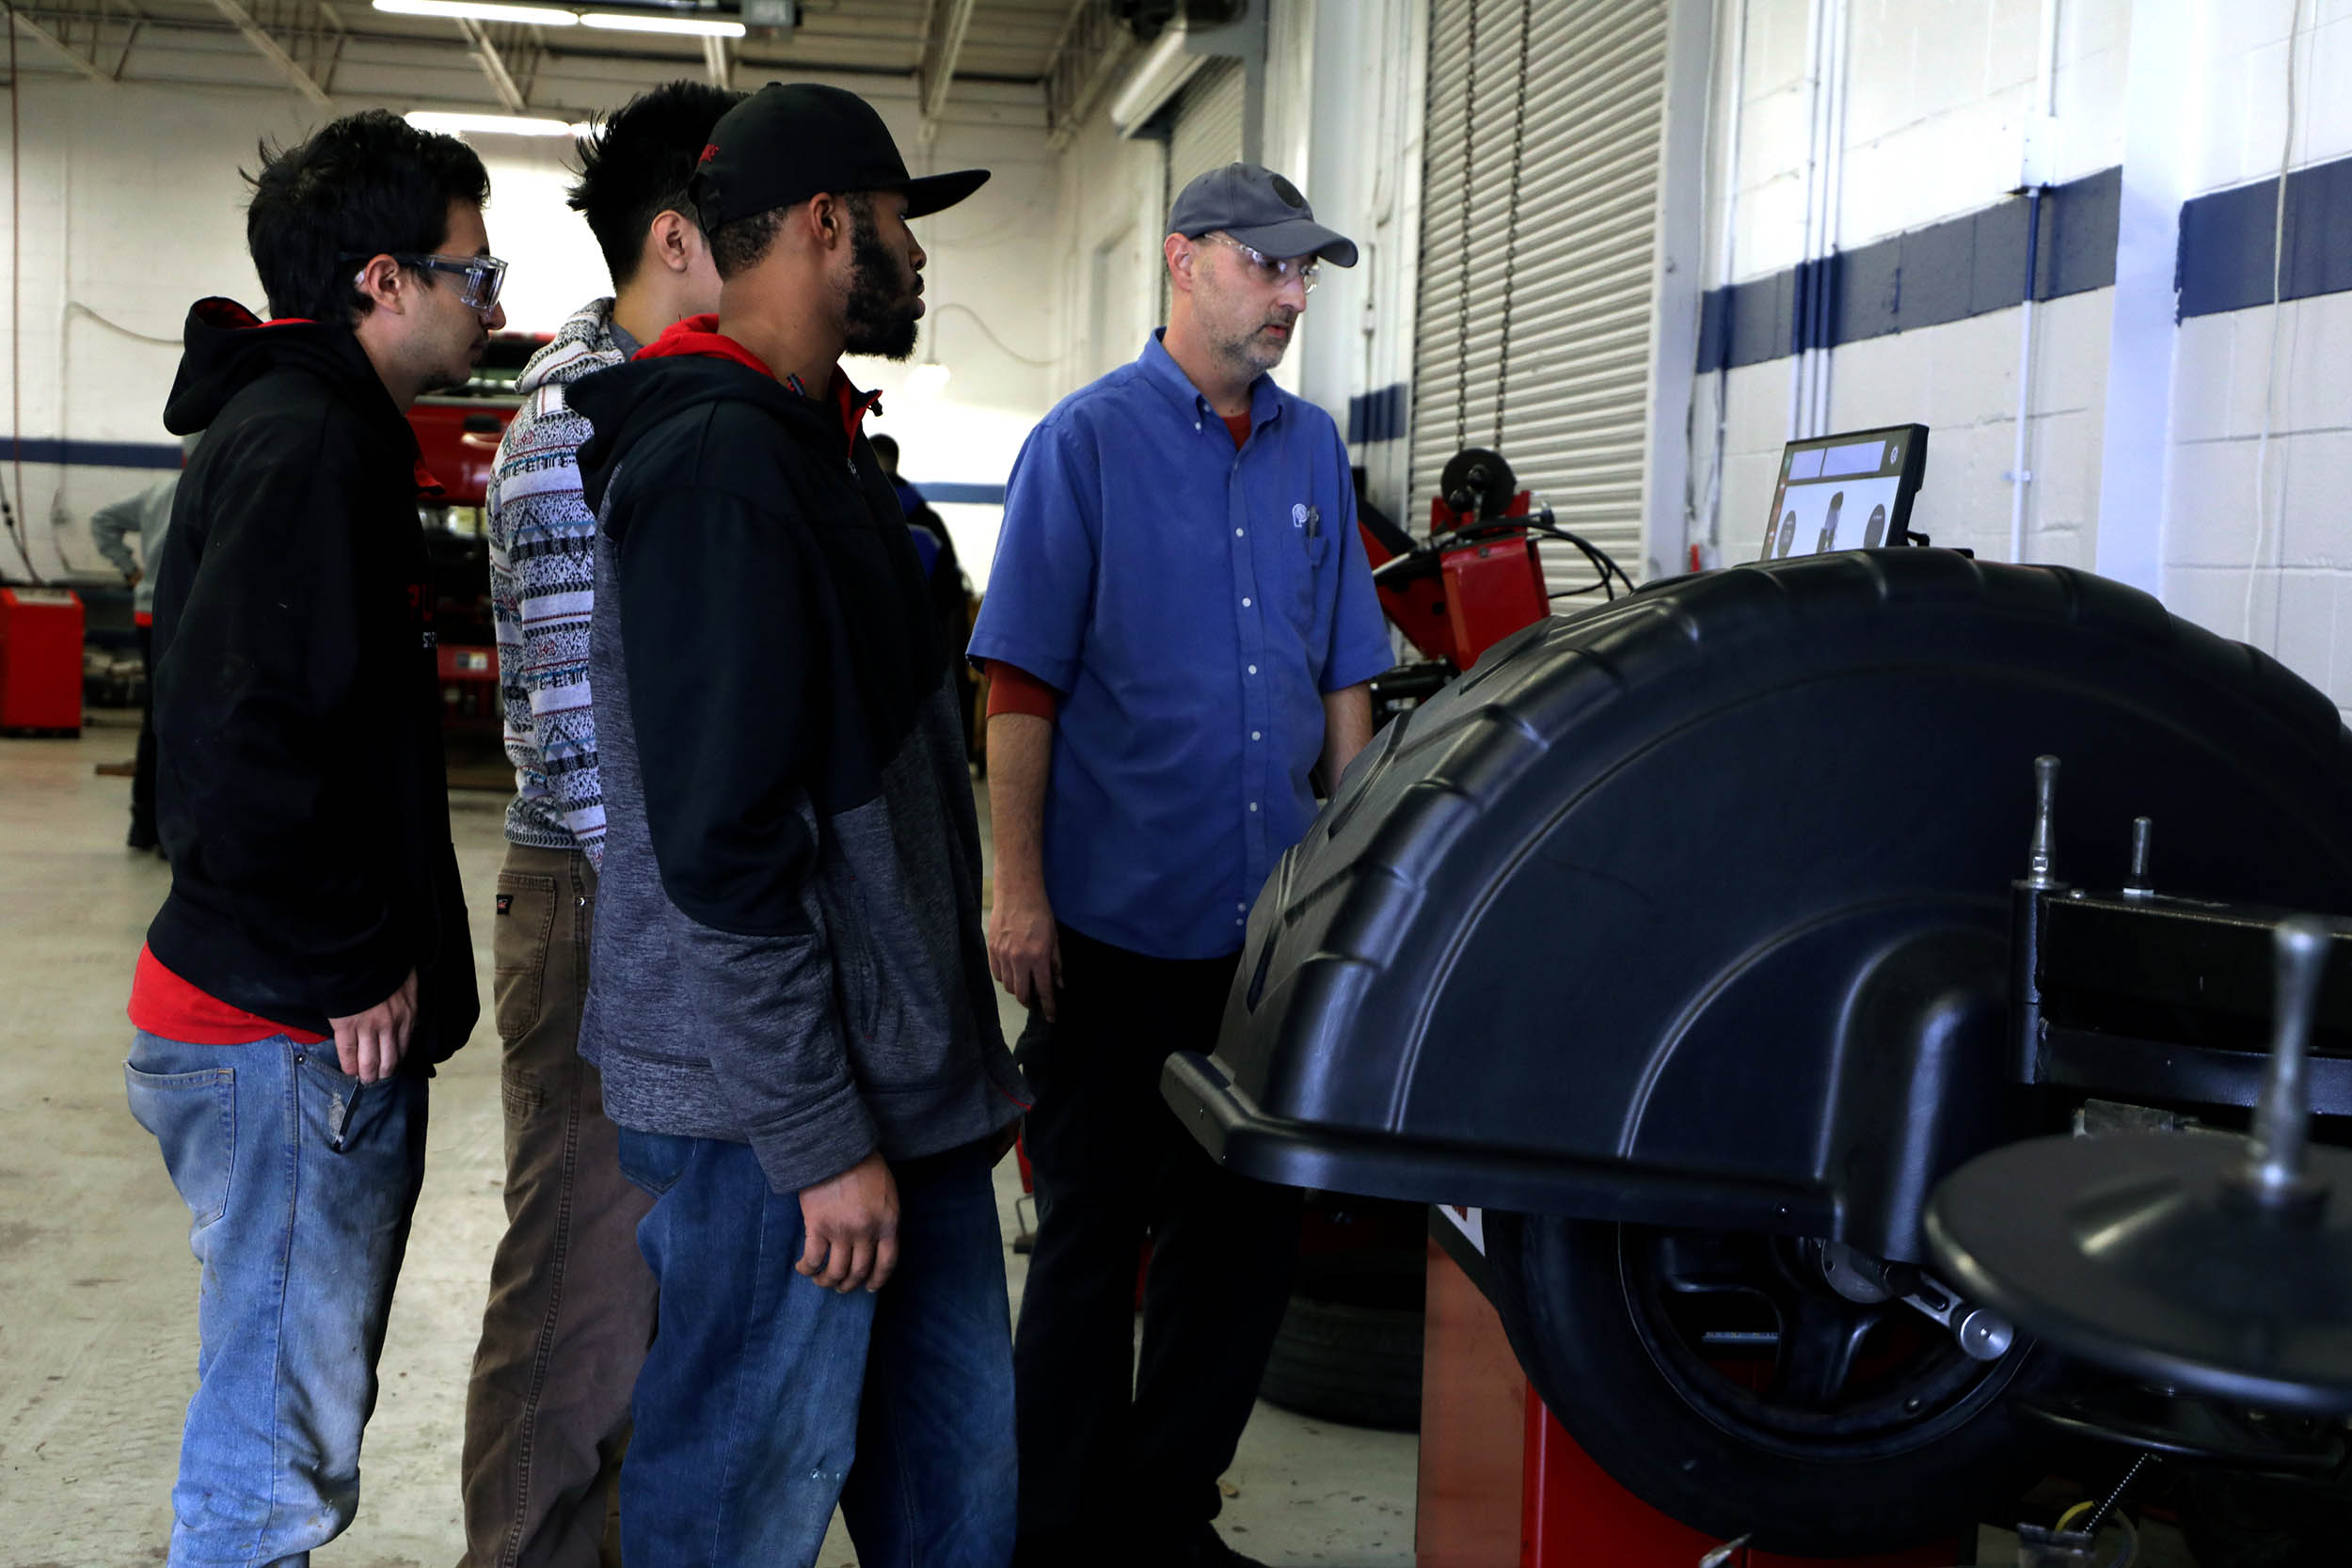 Automotive Instructor Talking to Students About Wheel Well